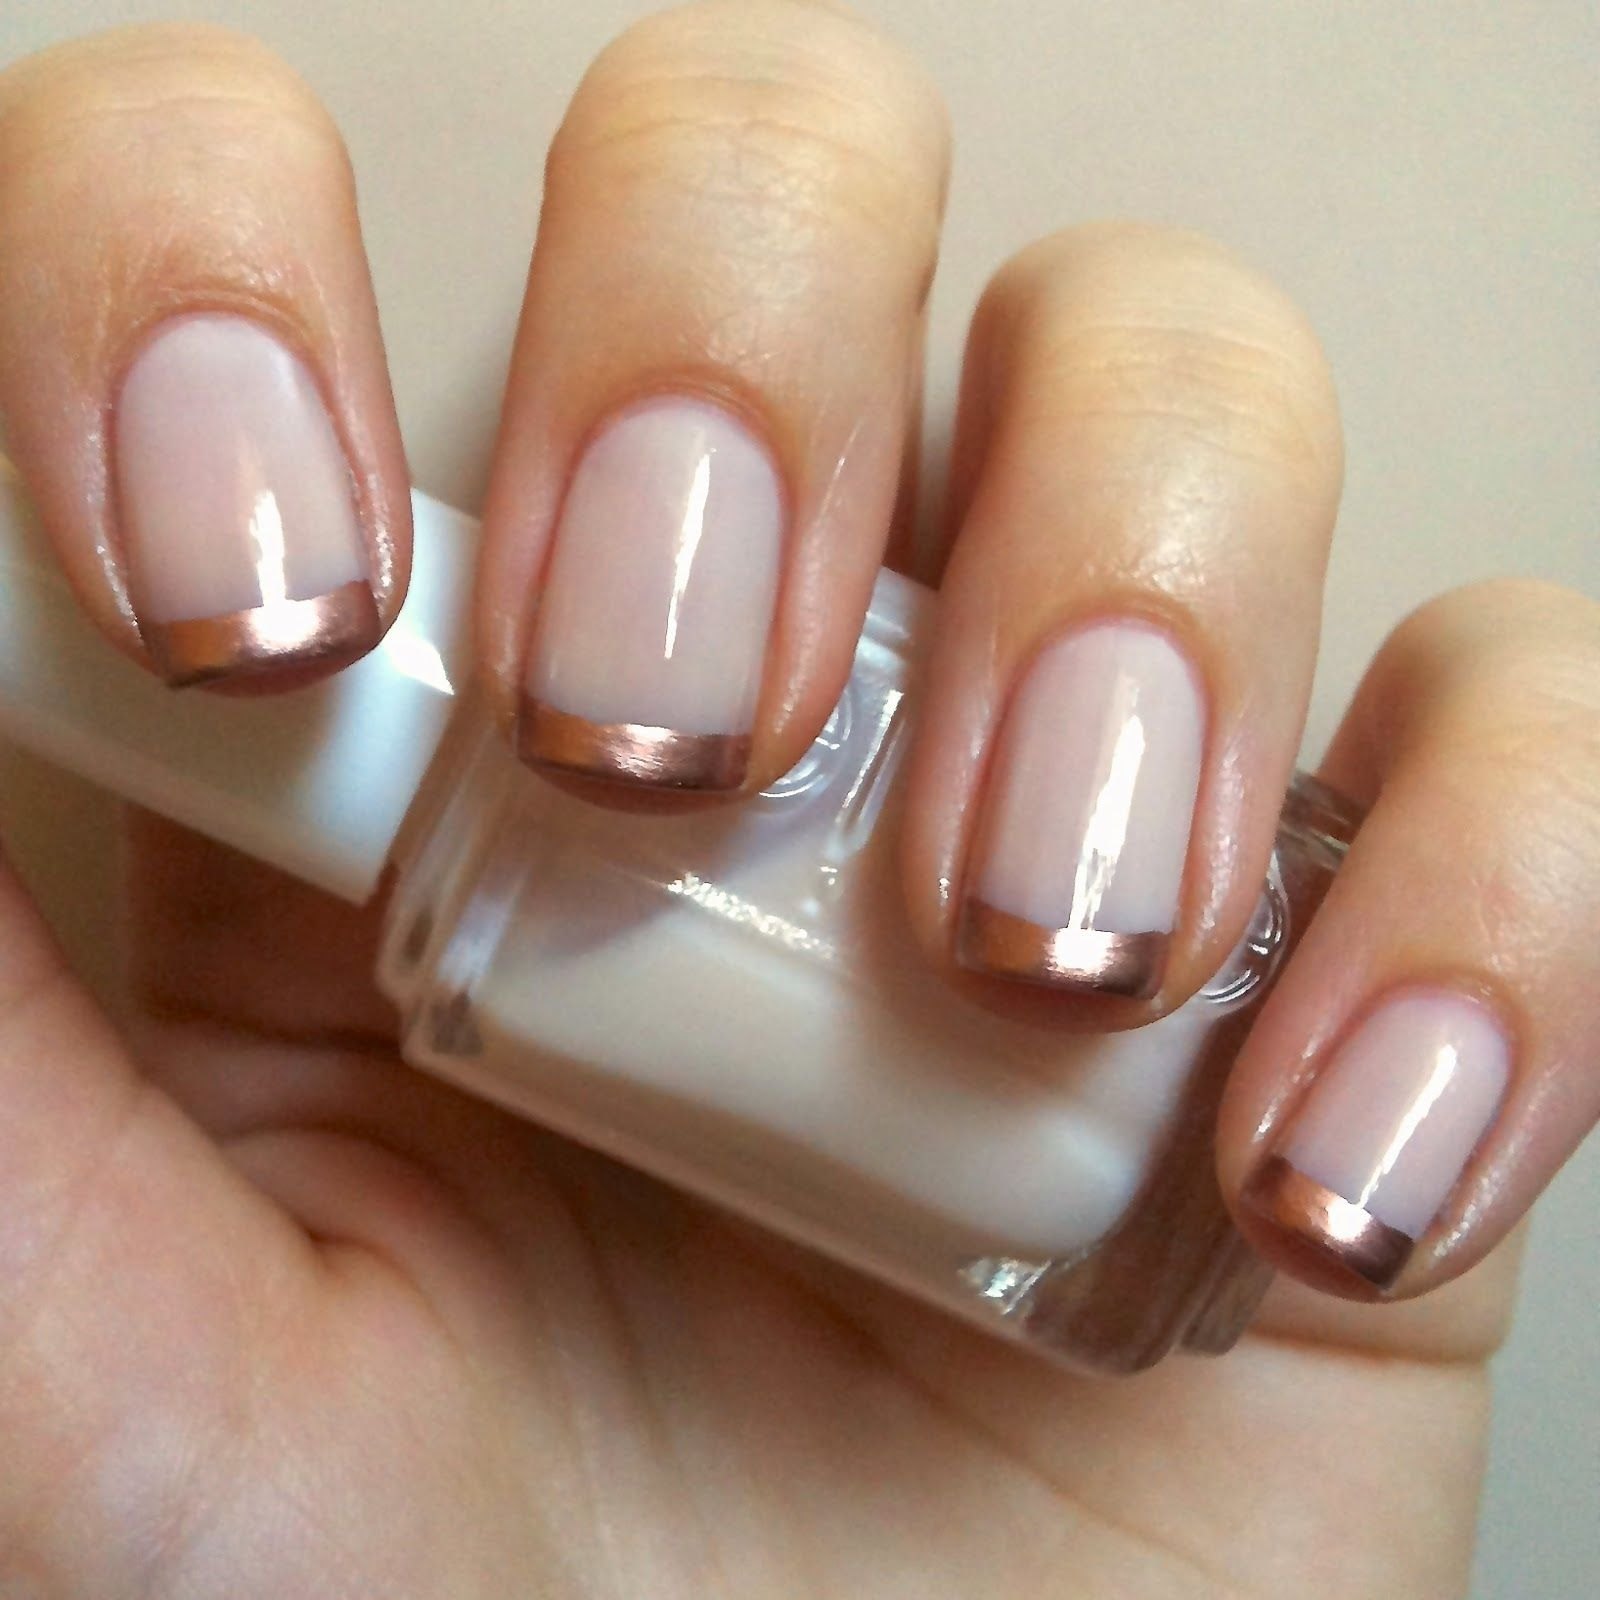 Nails Always Polished Rose Gold French Manicure Essie Adore A Ball And Penny Talk